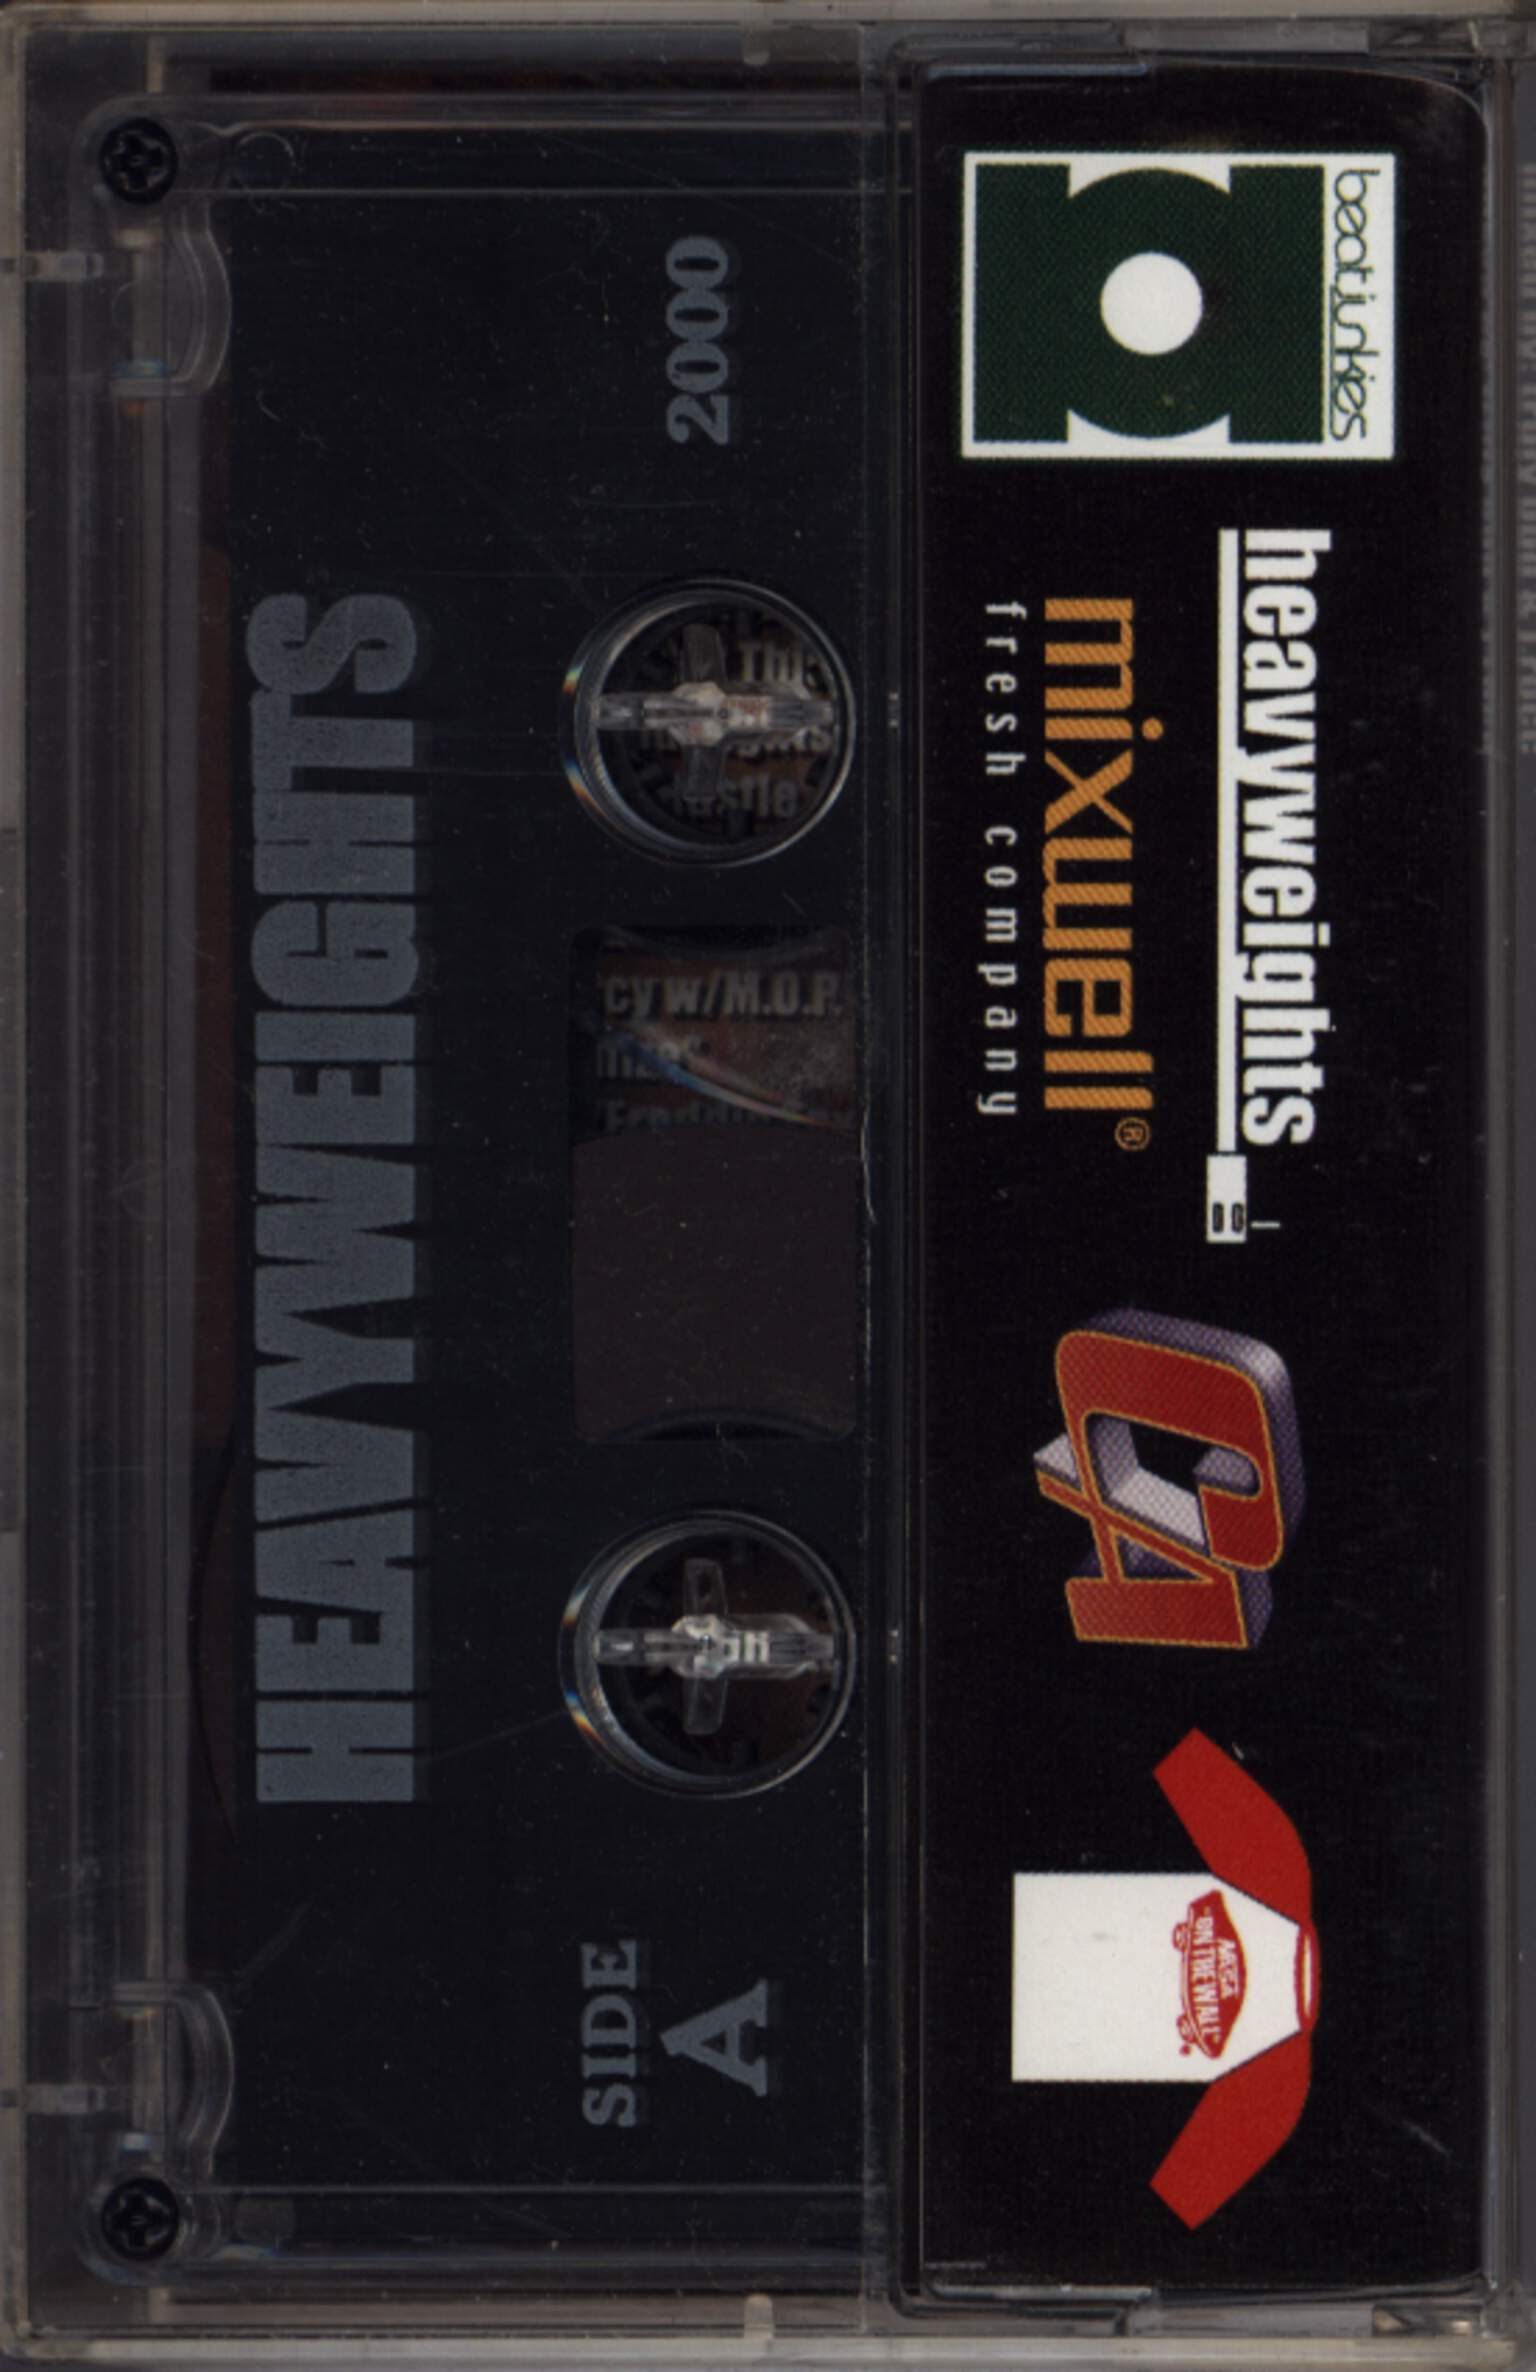 Truly Odd: Heavyweights Volume 1, Compact Cassette